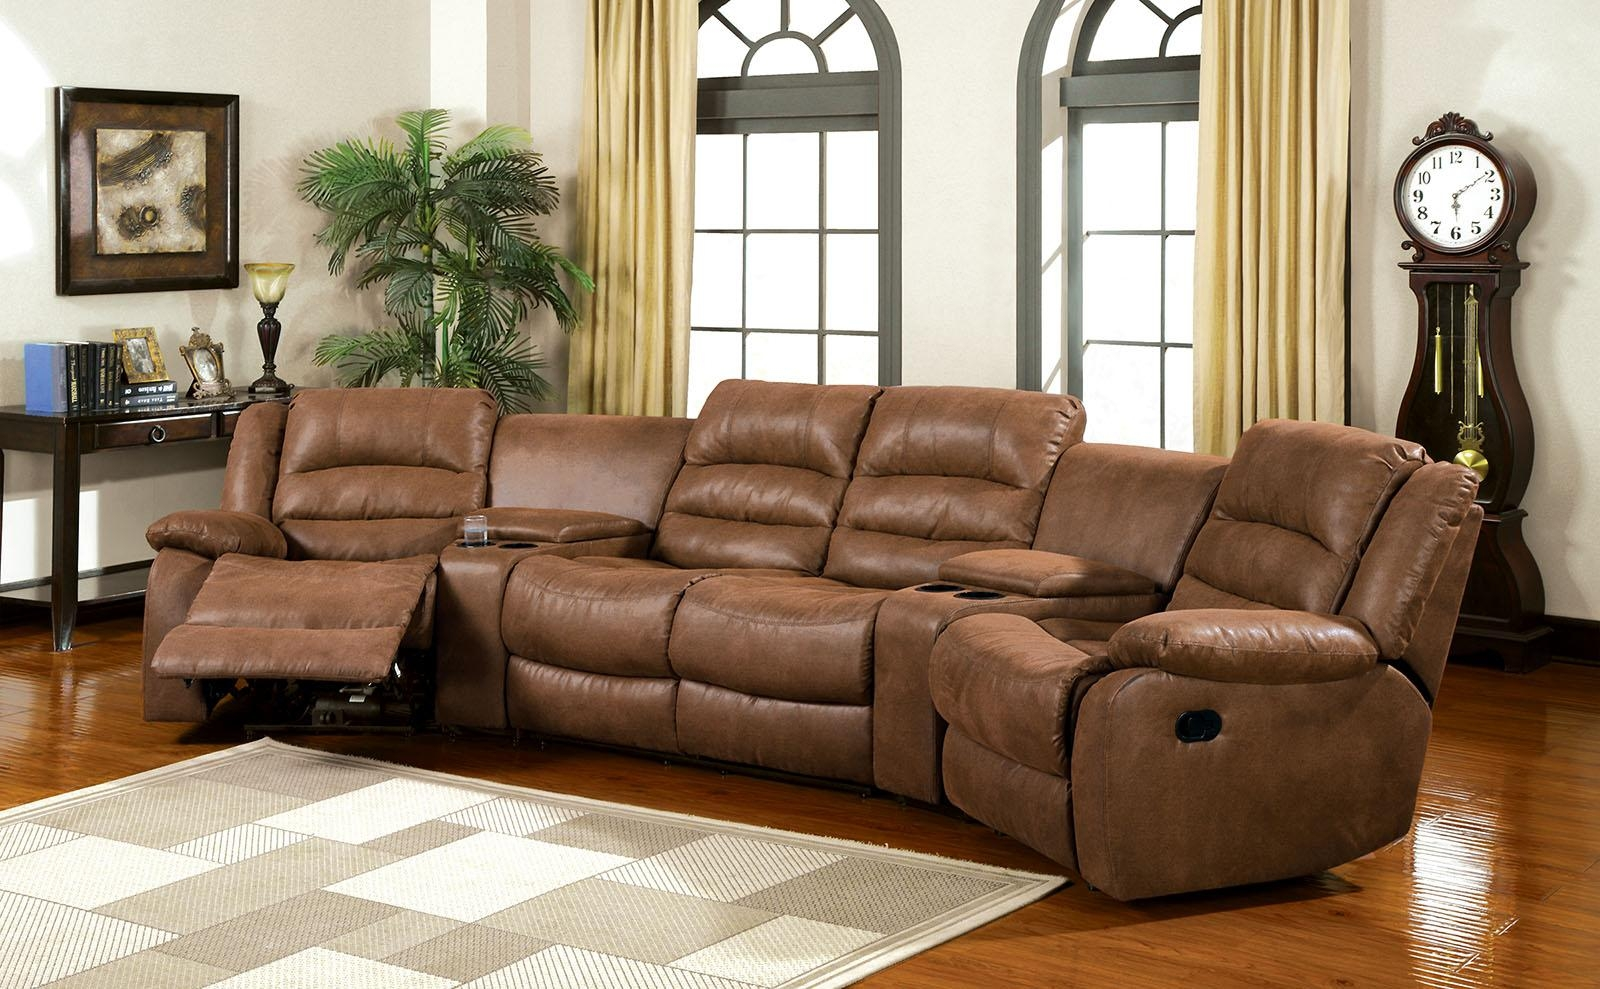 Furniture Of America Cm6123 Manchester Brown Leather Like Fabric 2 Inside Theatre Sectional Sofas (Image 4 of 20)